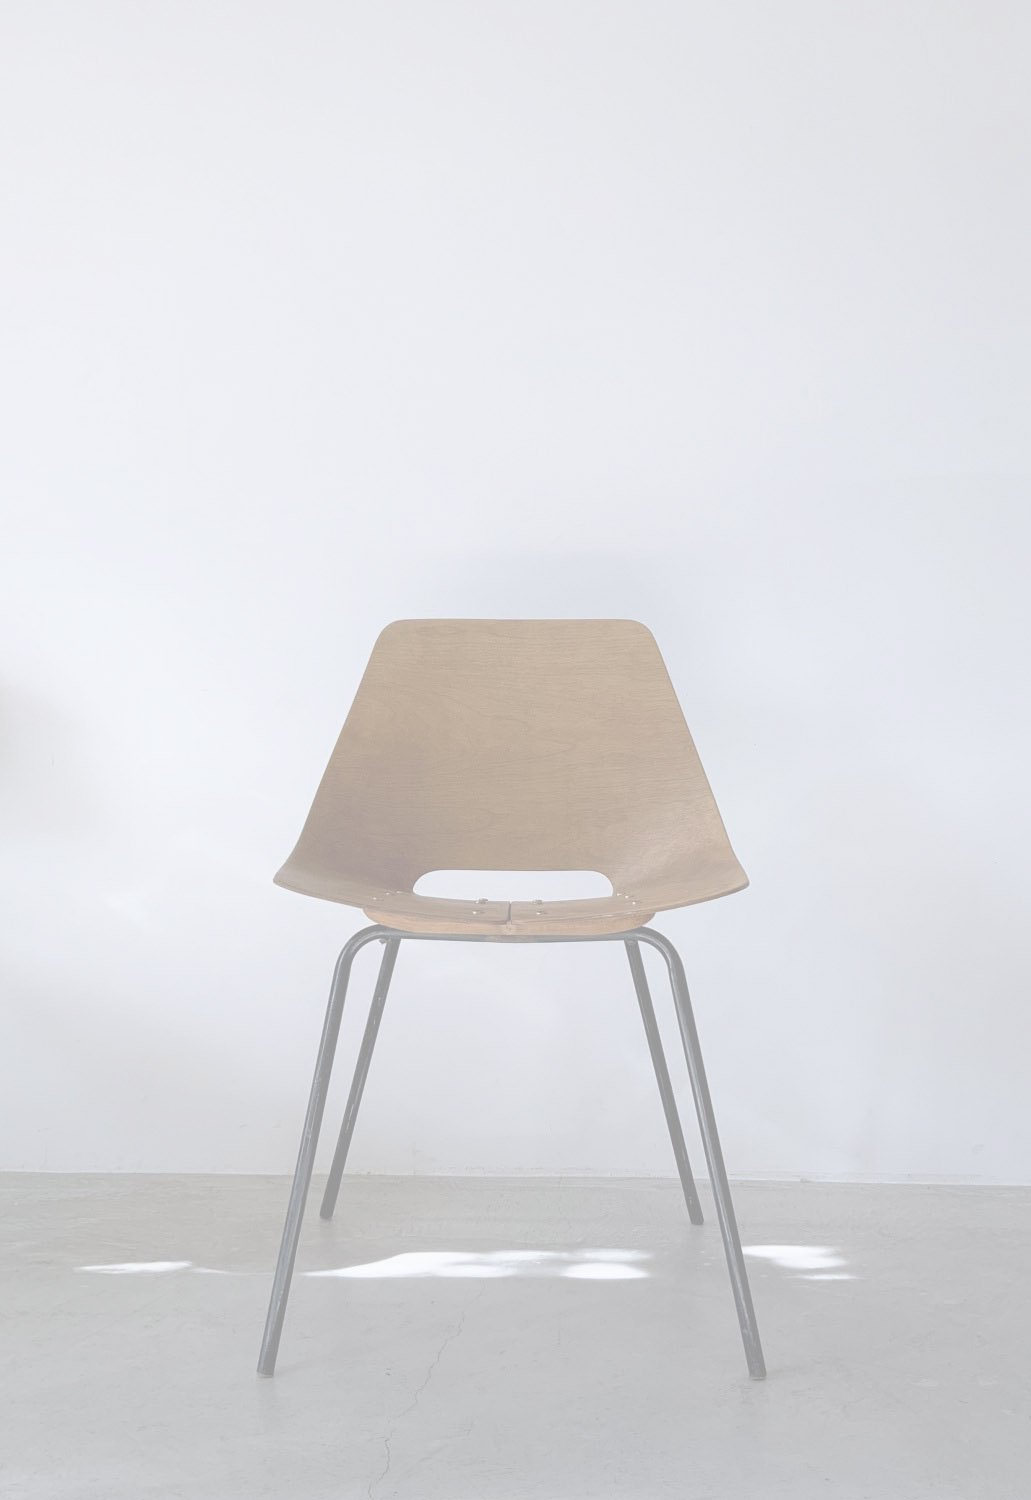 Pierre Guariche -Tonneau Chair